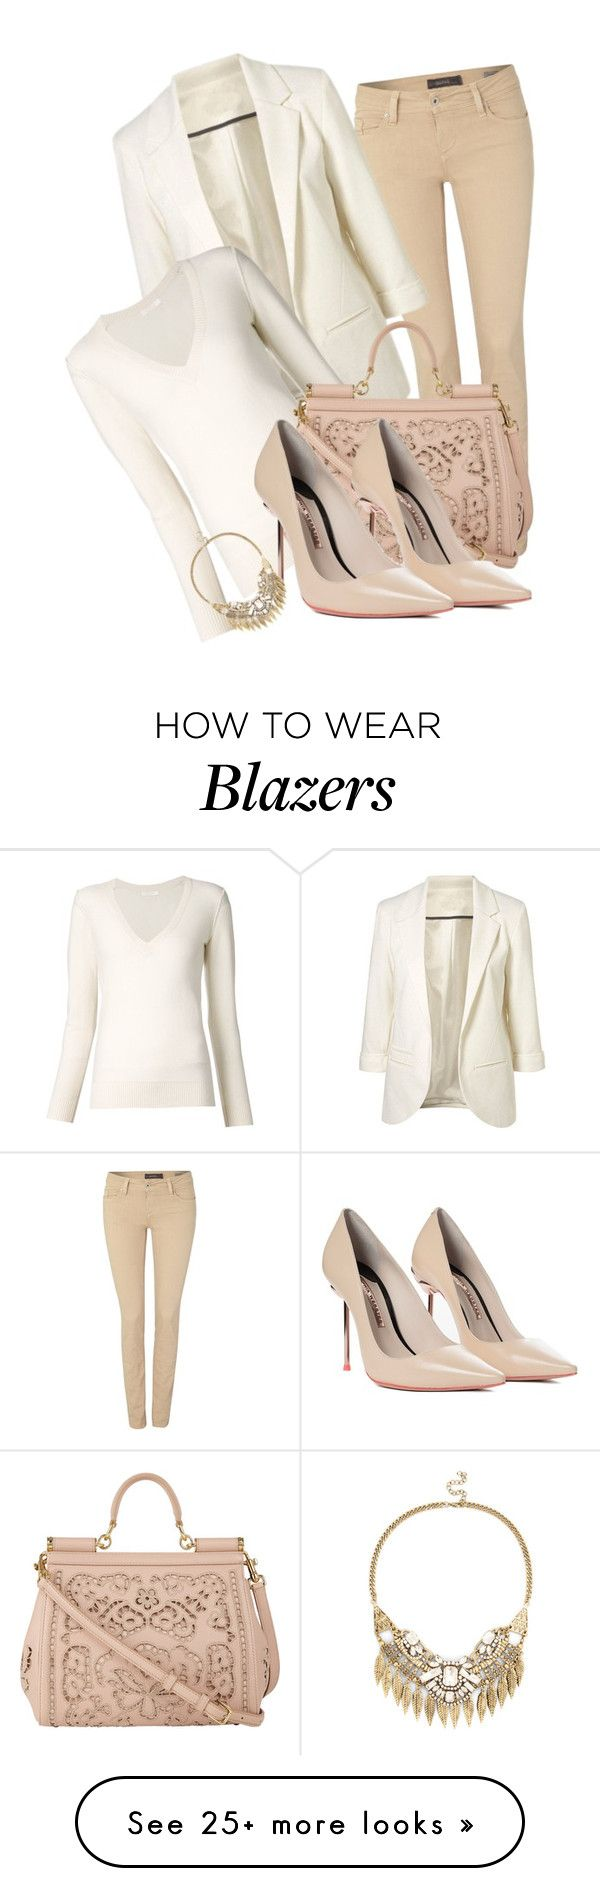 """Untitled #354"" by daaaiu on Polyvore featuring Salsa, Chloé, Dolce&Gabbana, Sophia Webster and Sole Society"